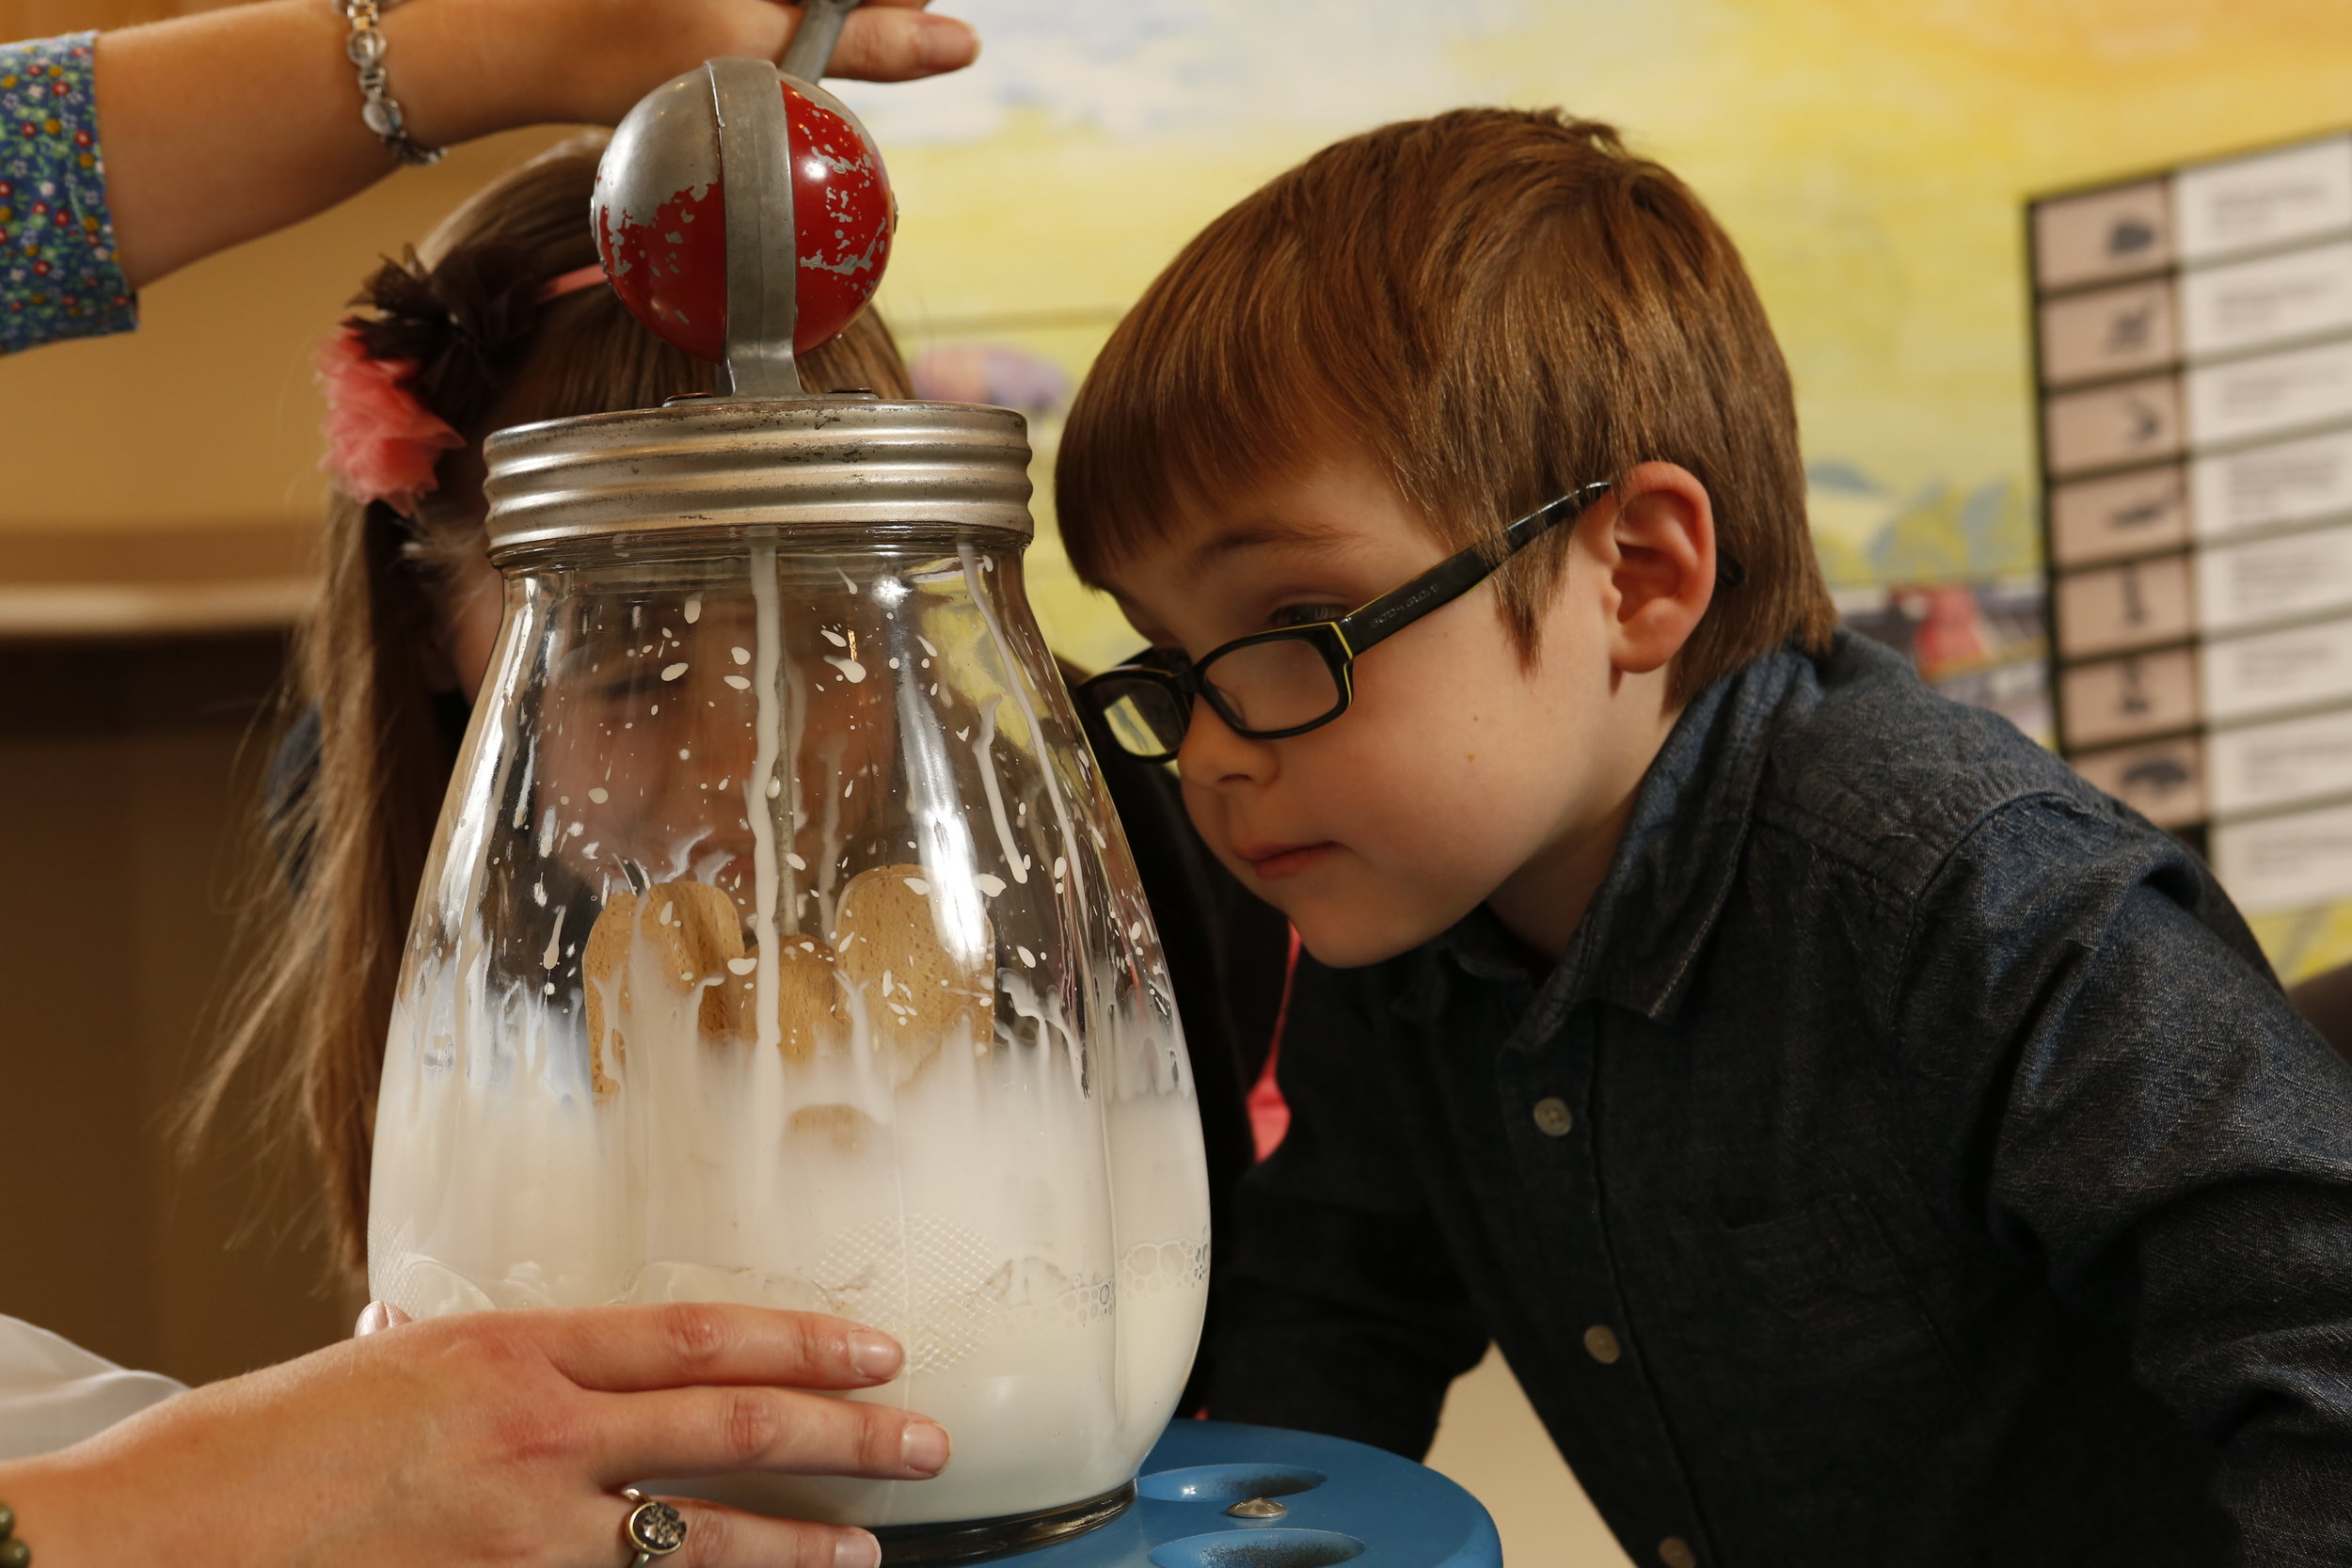 Butter churning will be featured - WDM Photo